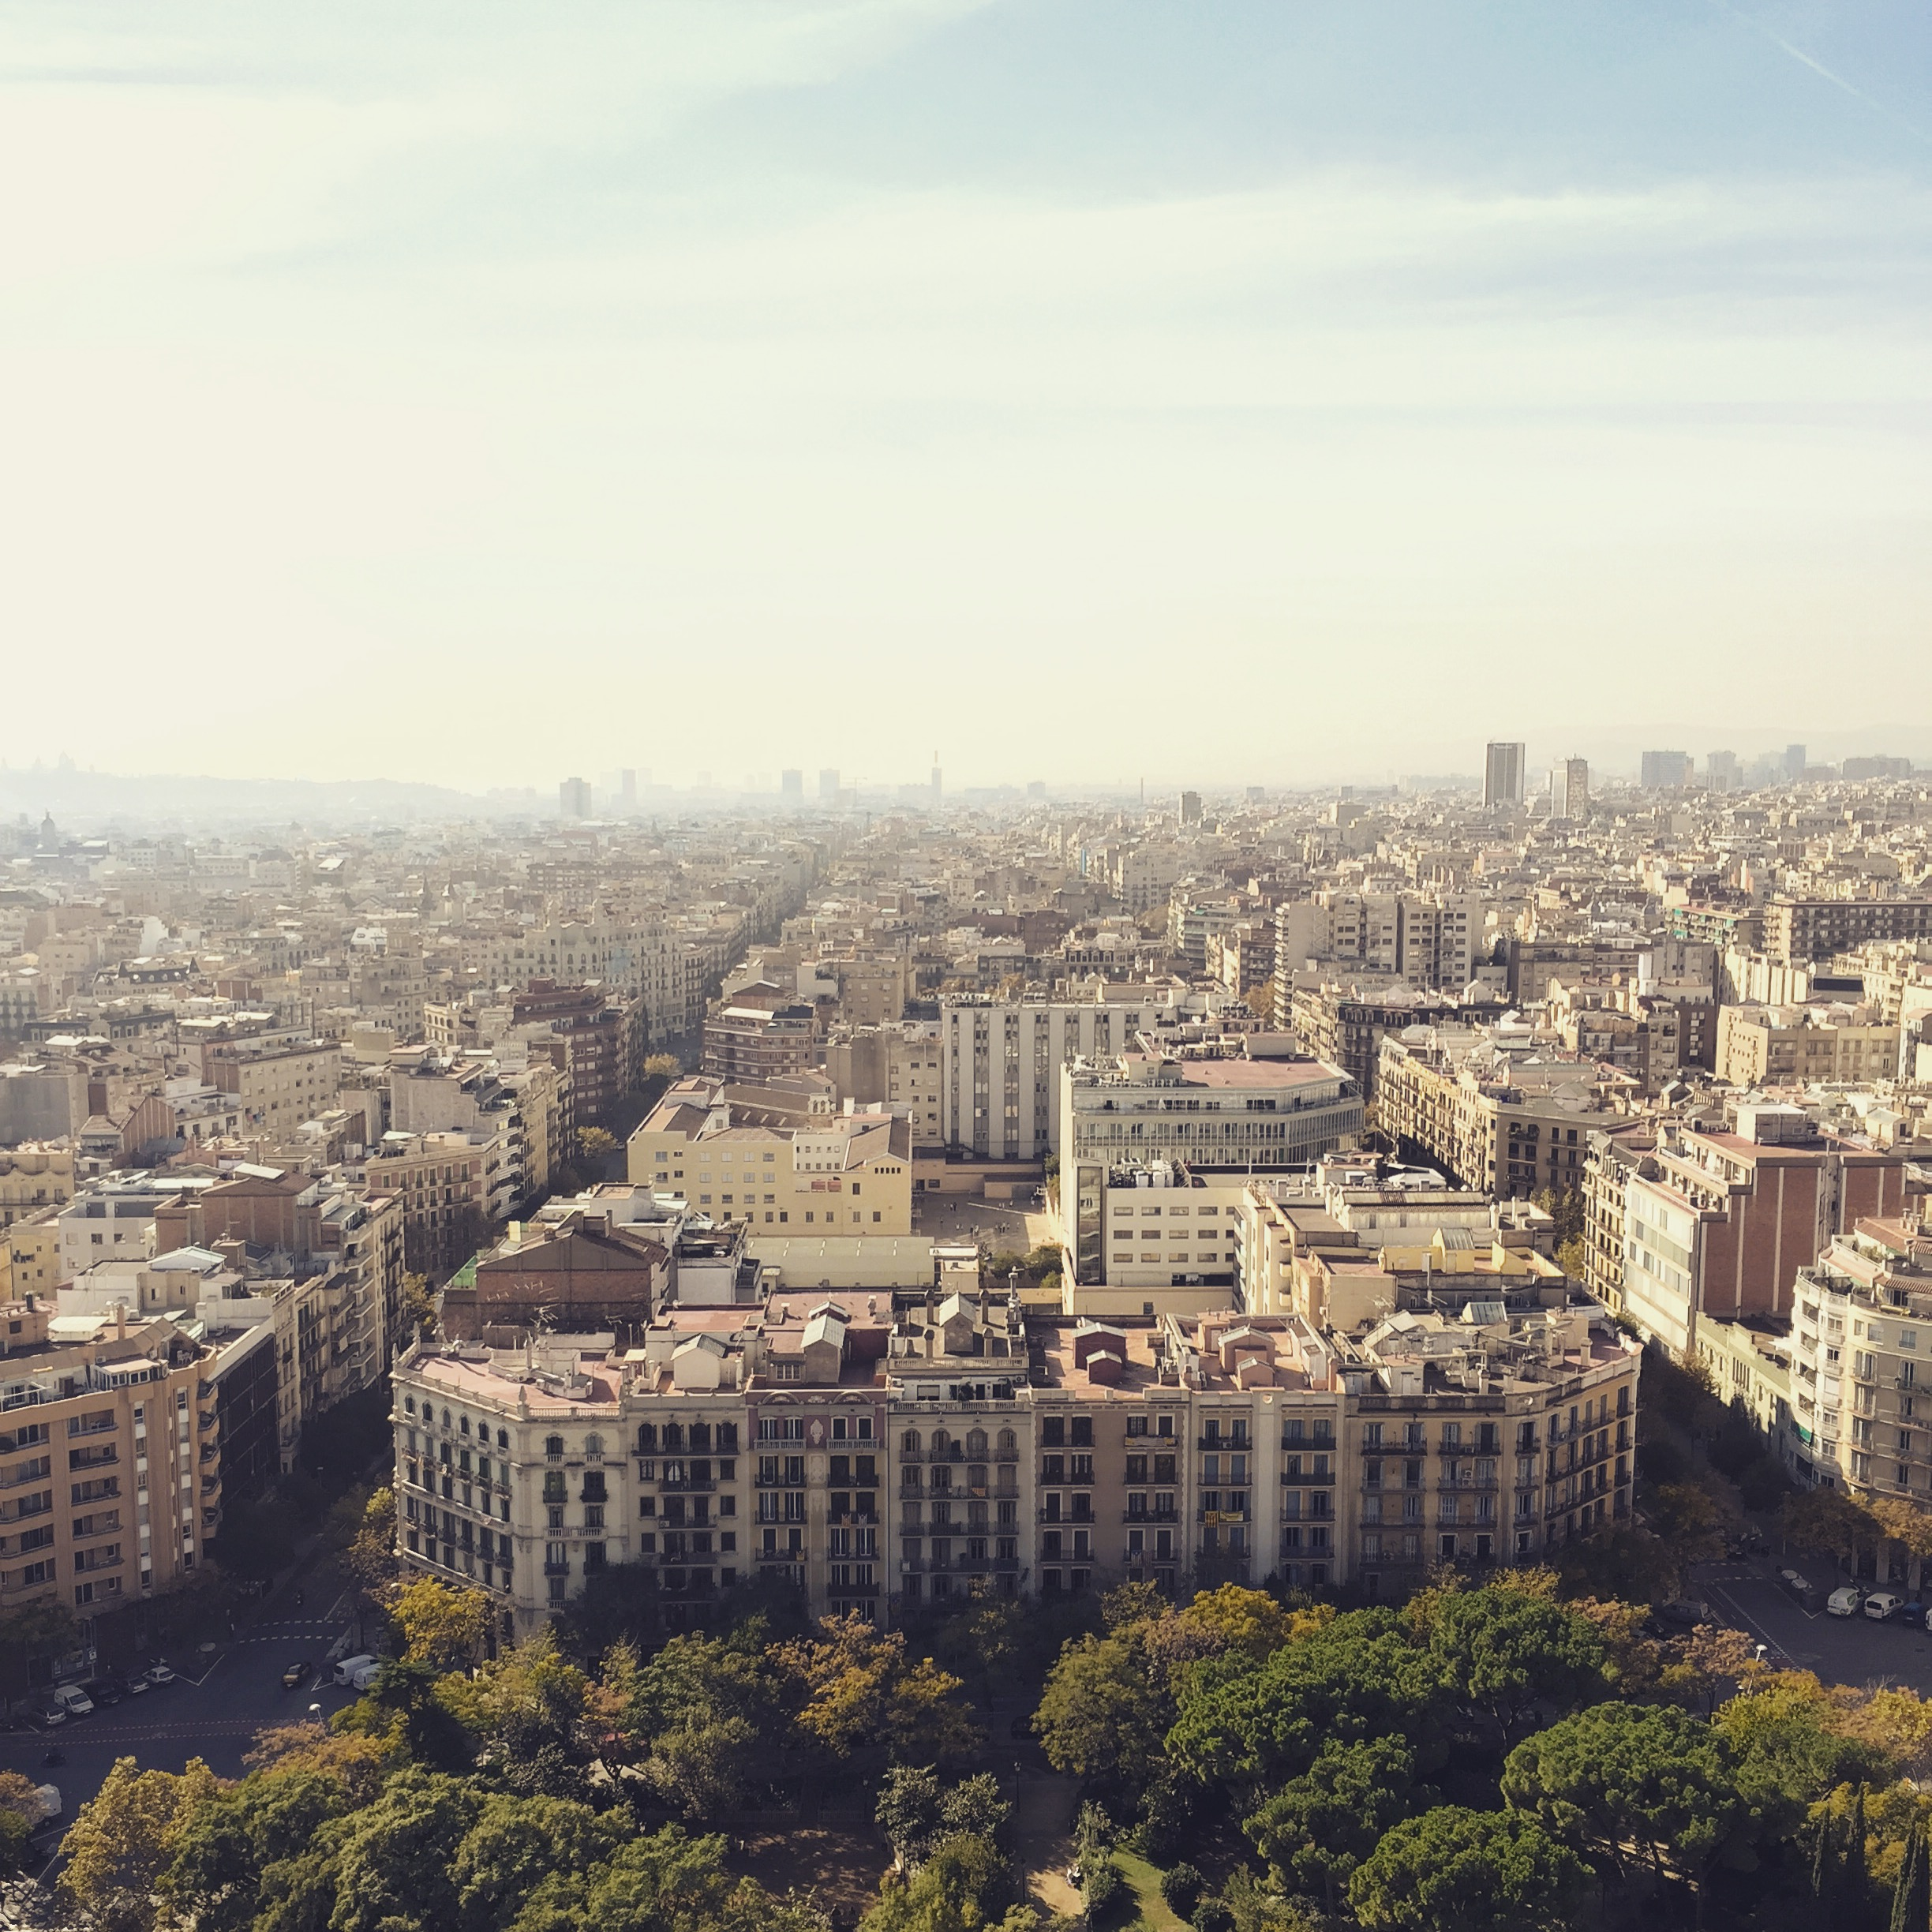 01_Barca birds eye